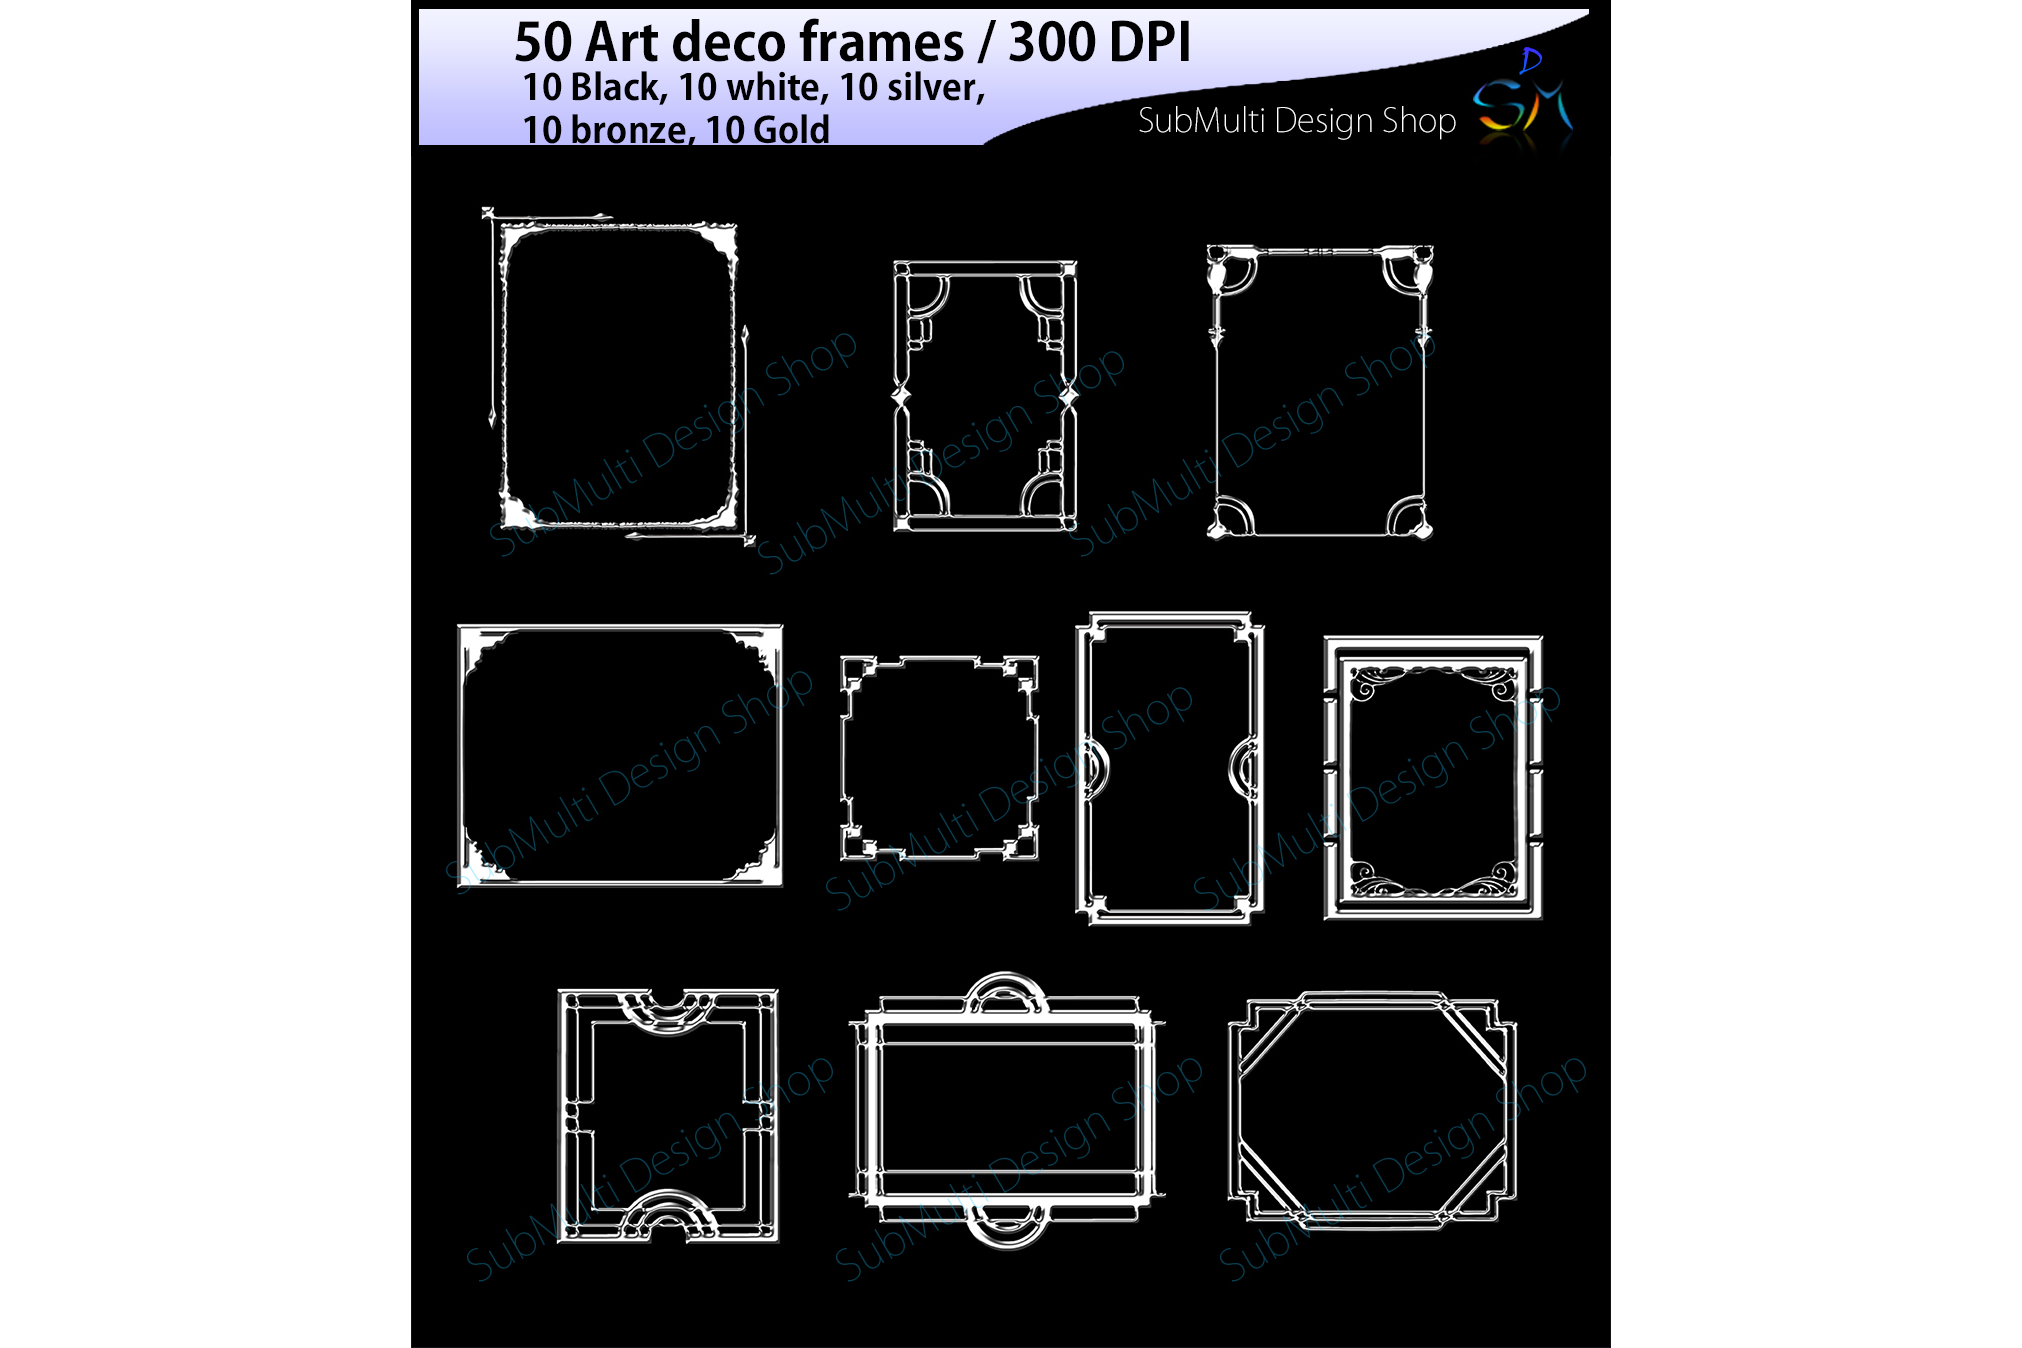 art deco frames / art deco frames clipart / art deco frames silhouette / art deco gold frames / art deco silver frame / digital/High Quality example image 4